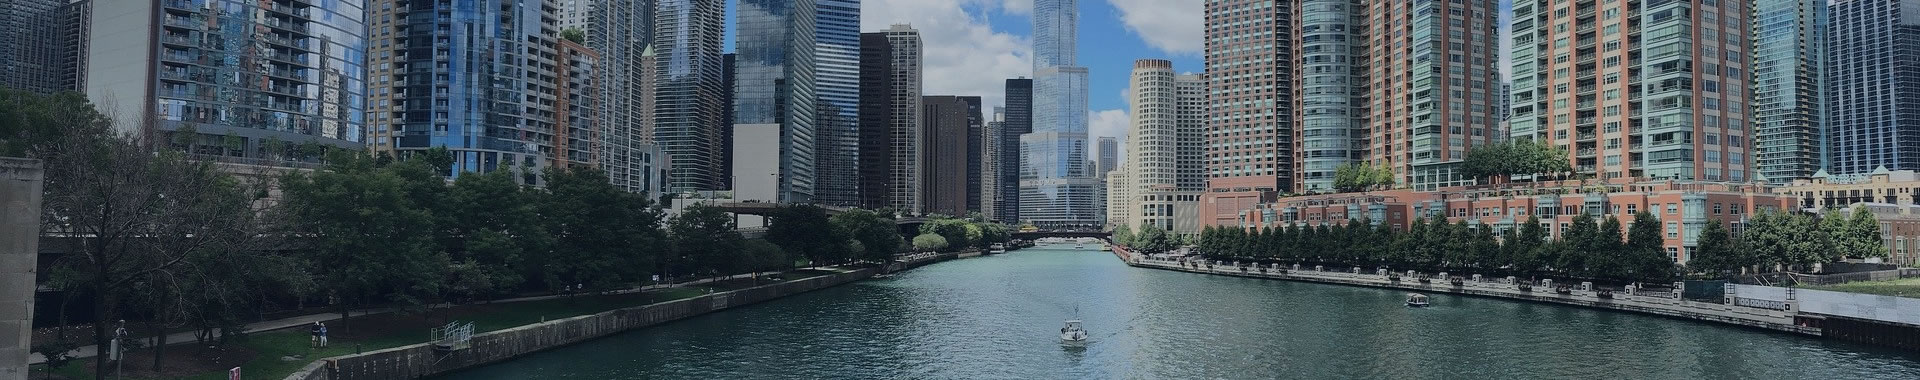 Photo of downtown Chicago and river flowing through it.